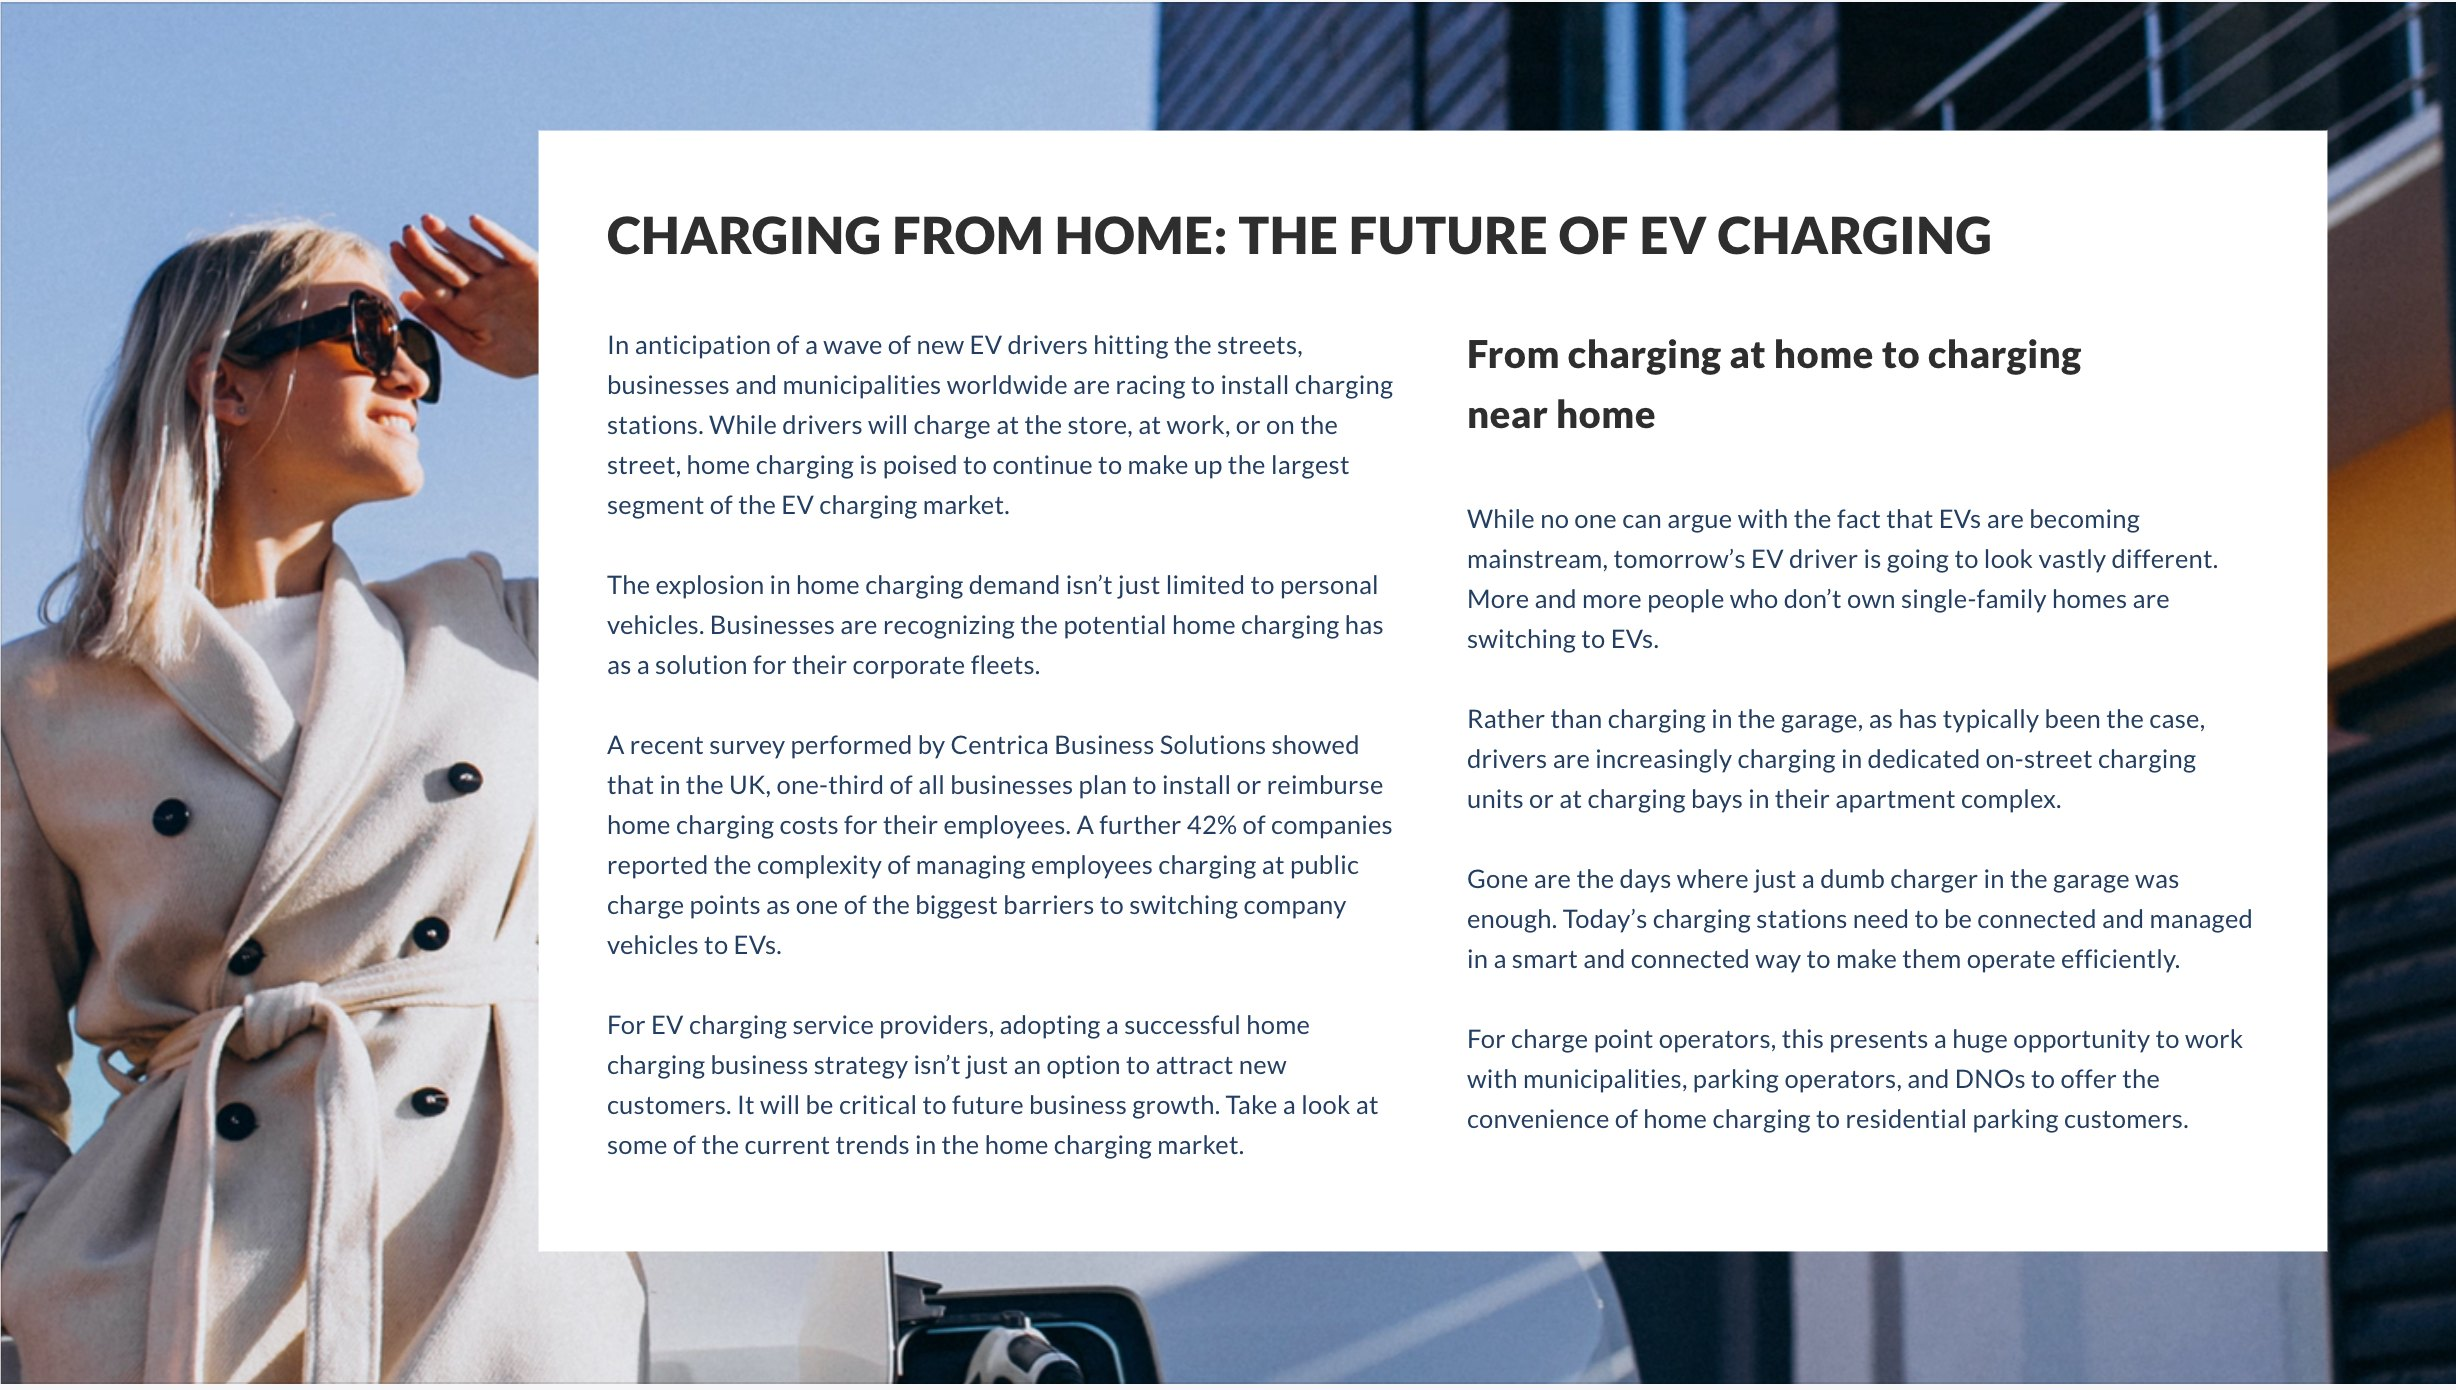 Building A Successful Home Charging Business Model - For a full guide to the home charging market, establishing your home charging business model, and key tools for success, click here to download our e-book.